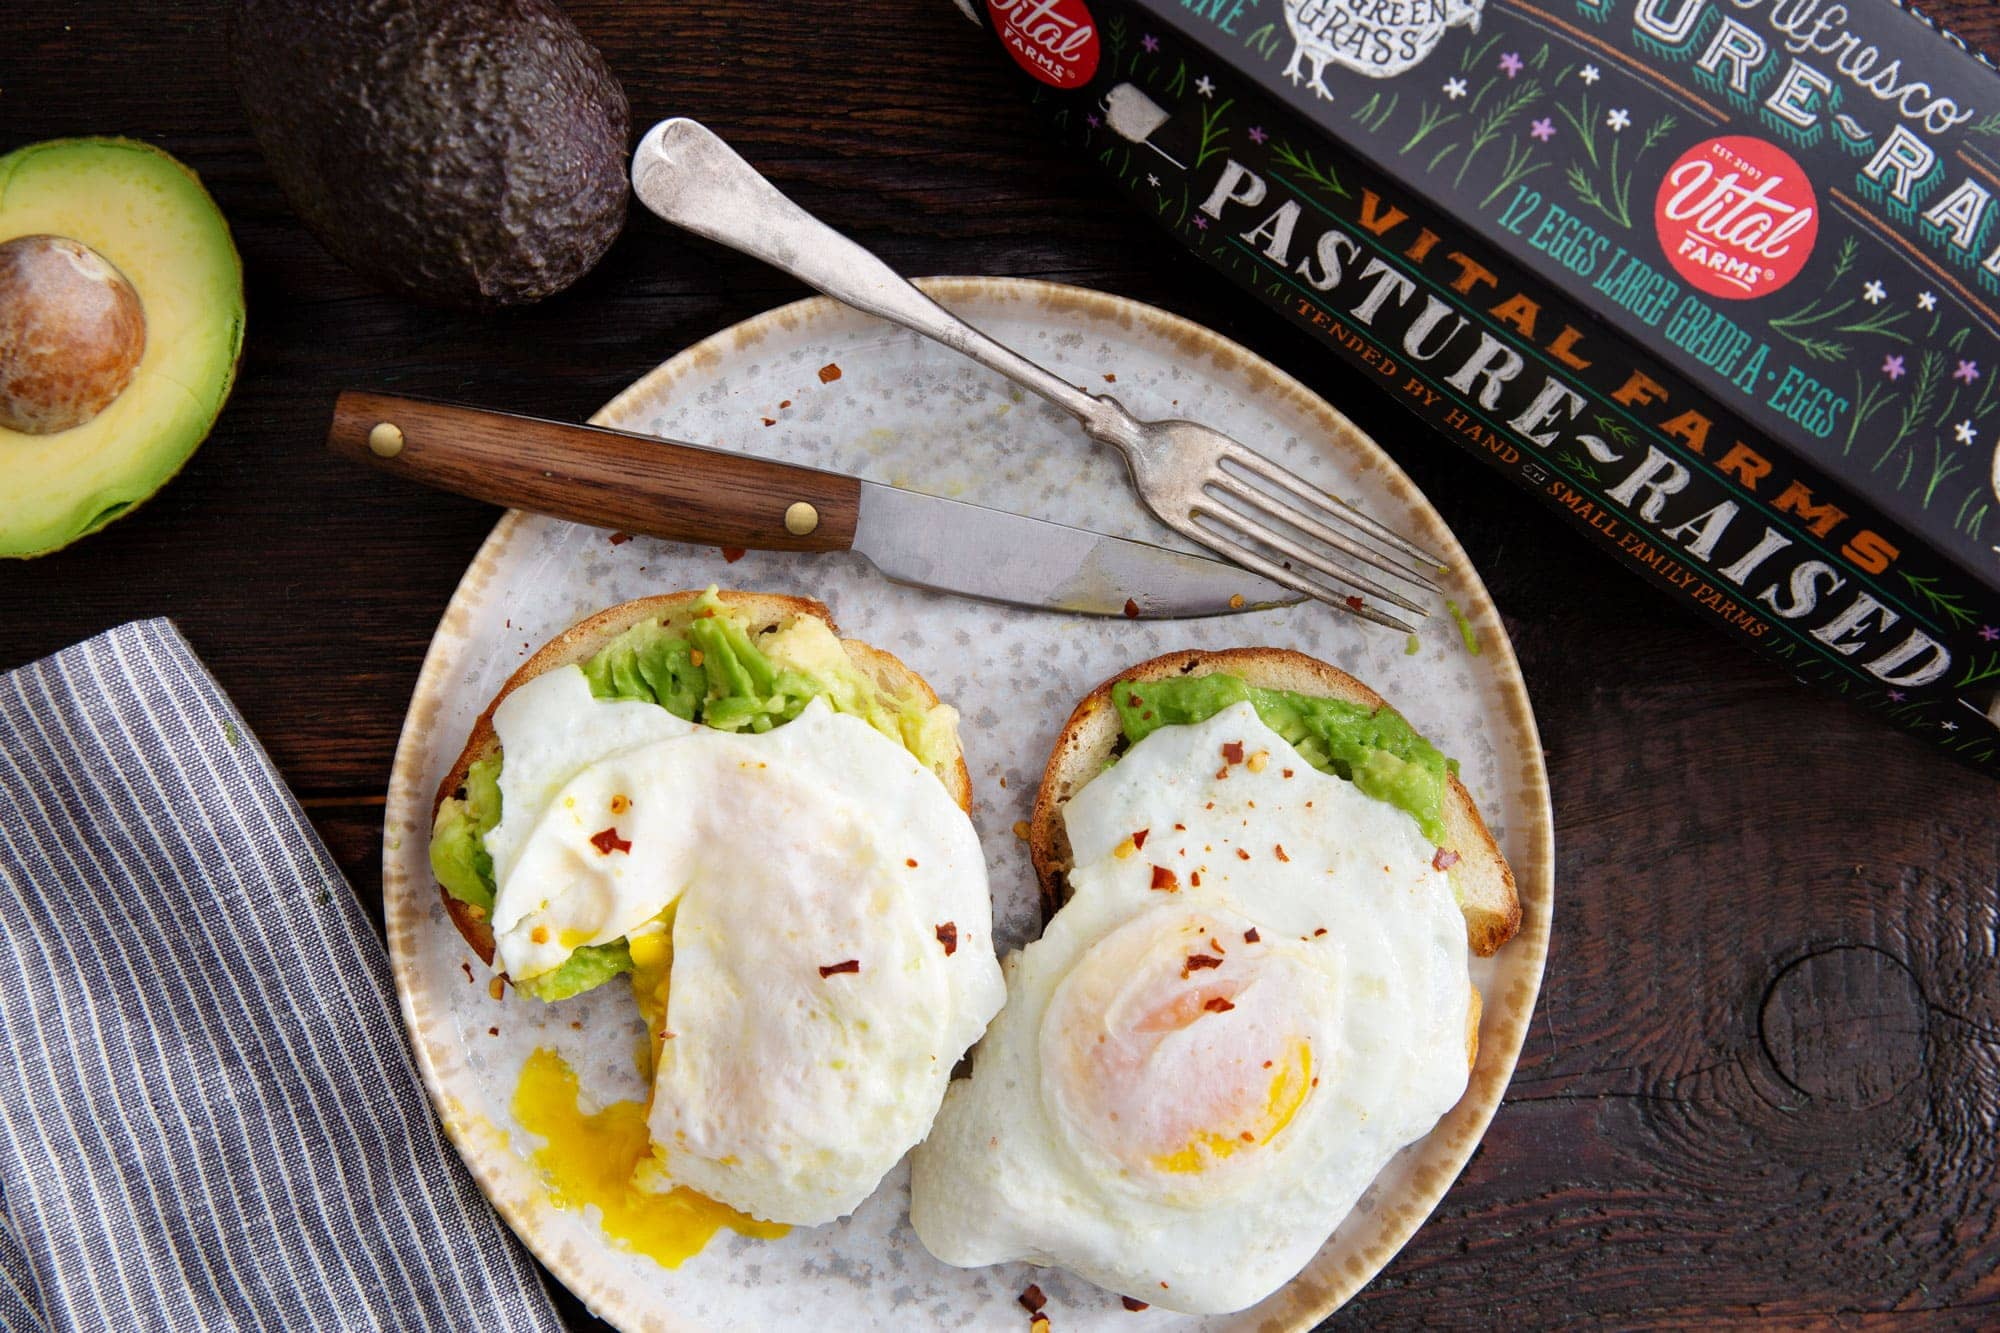 Over Easy eggs on top of avocado toast on a plate with Vital Farms egg carton and eggs and avocado nearby.